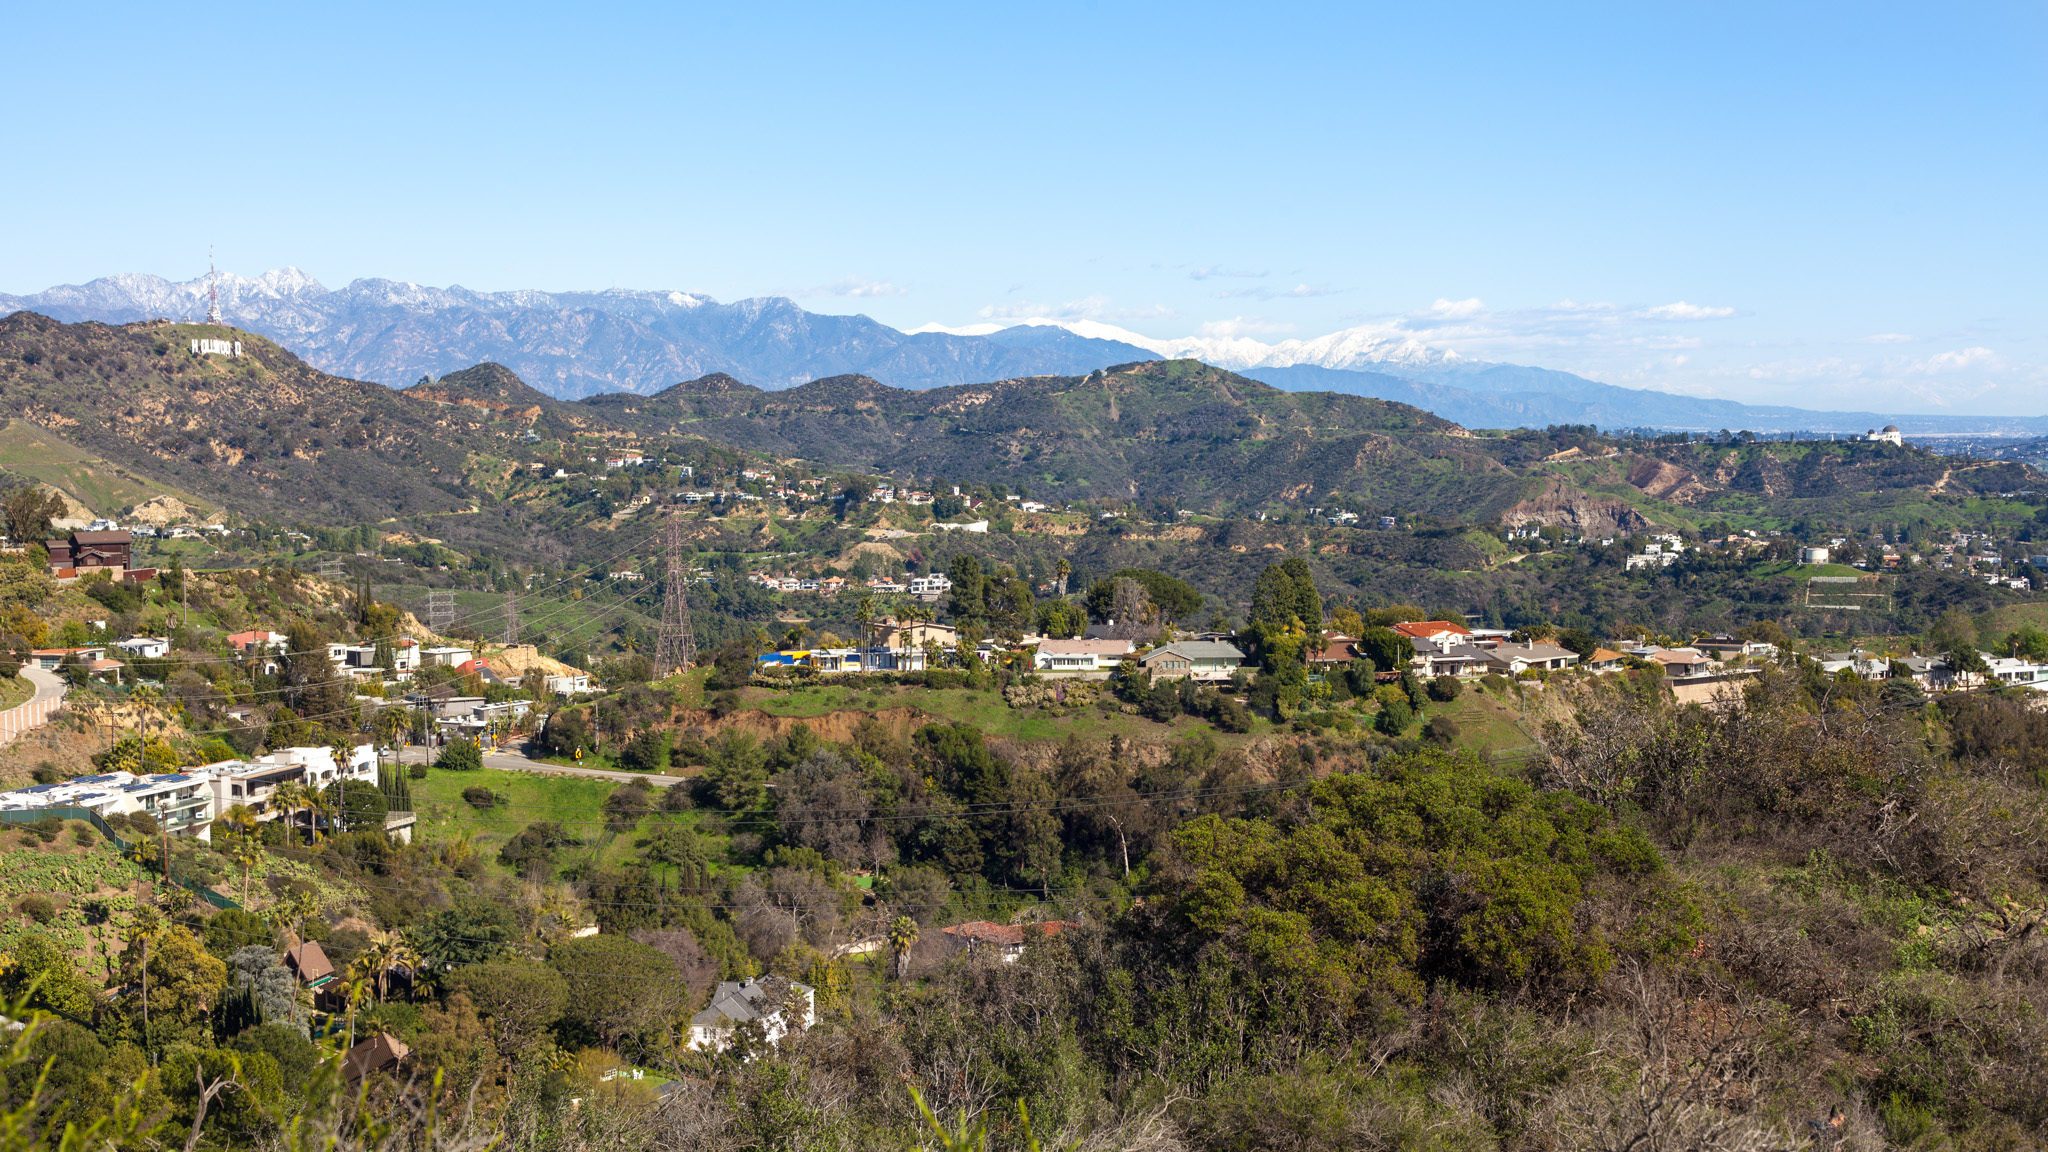 Los Angeles is a snowy, green paradise right now